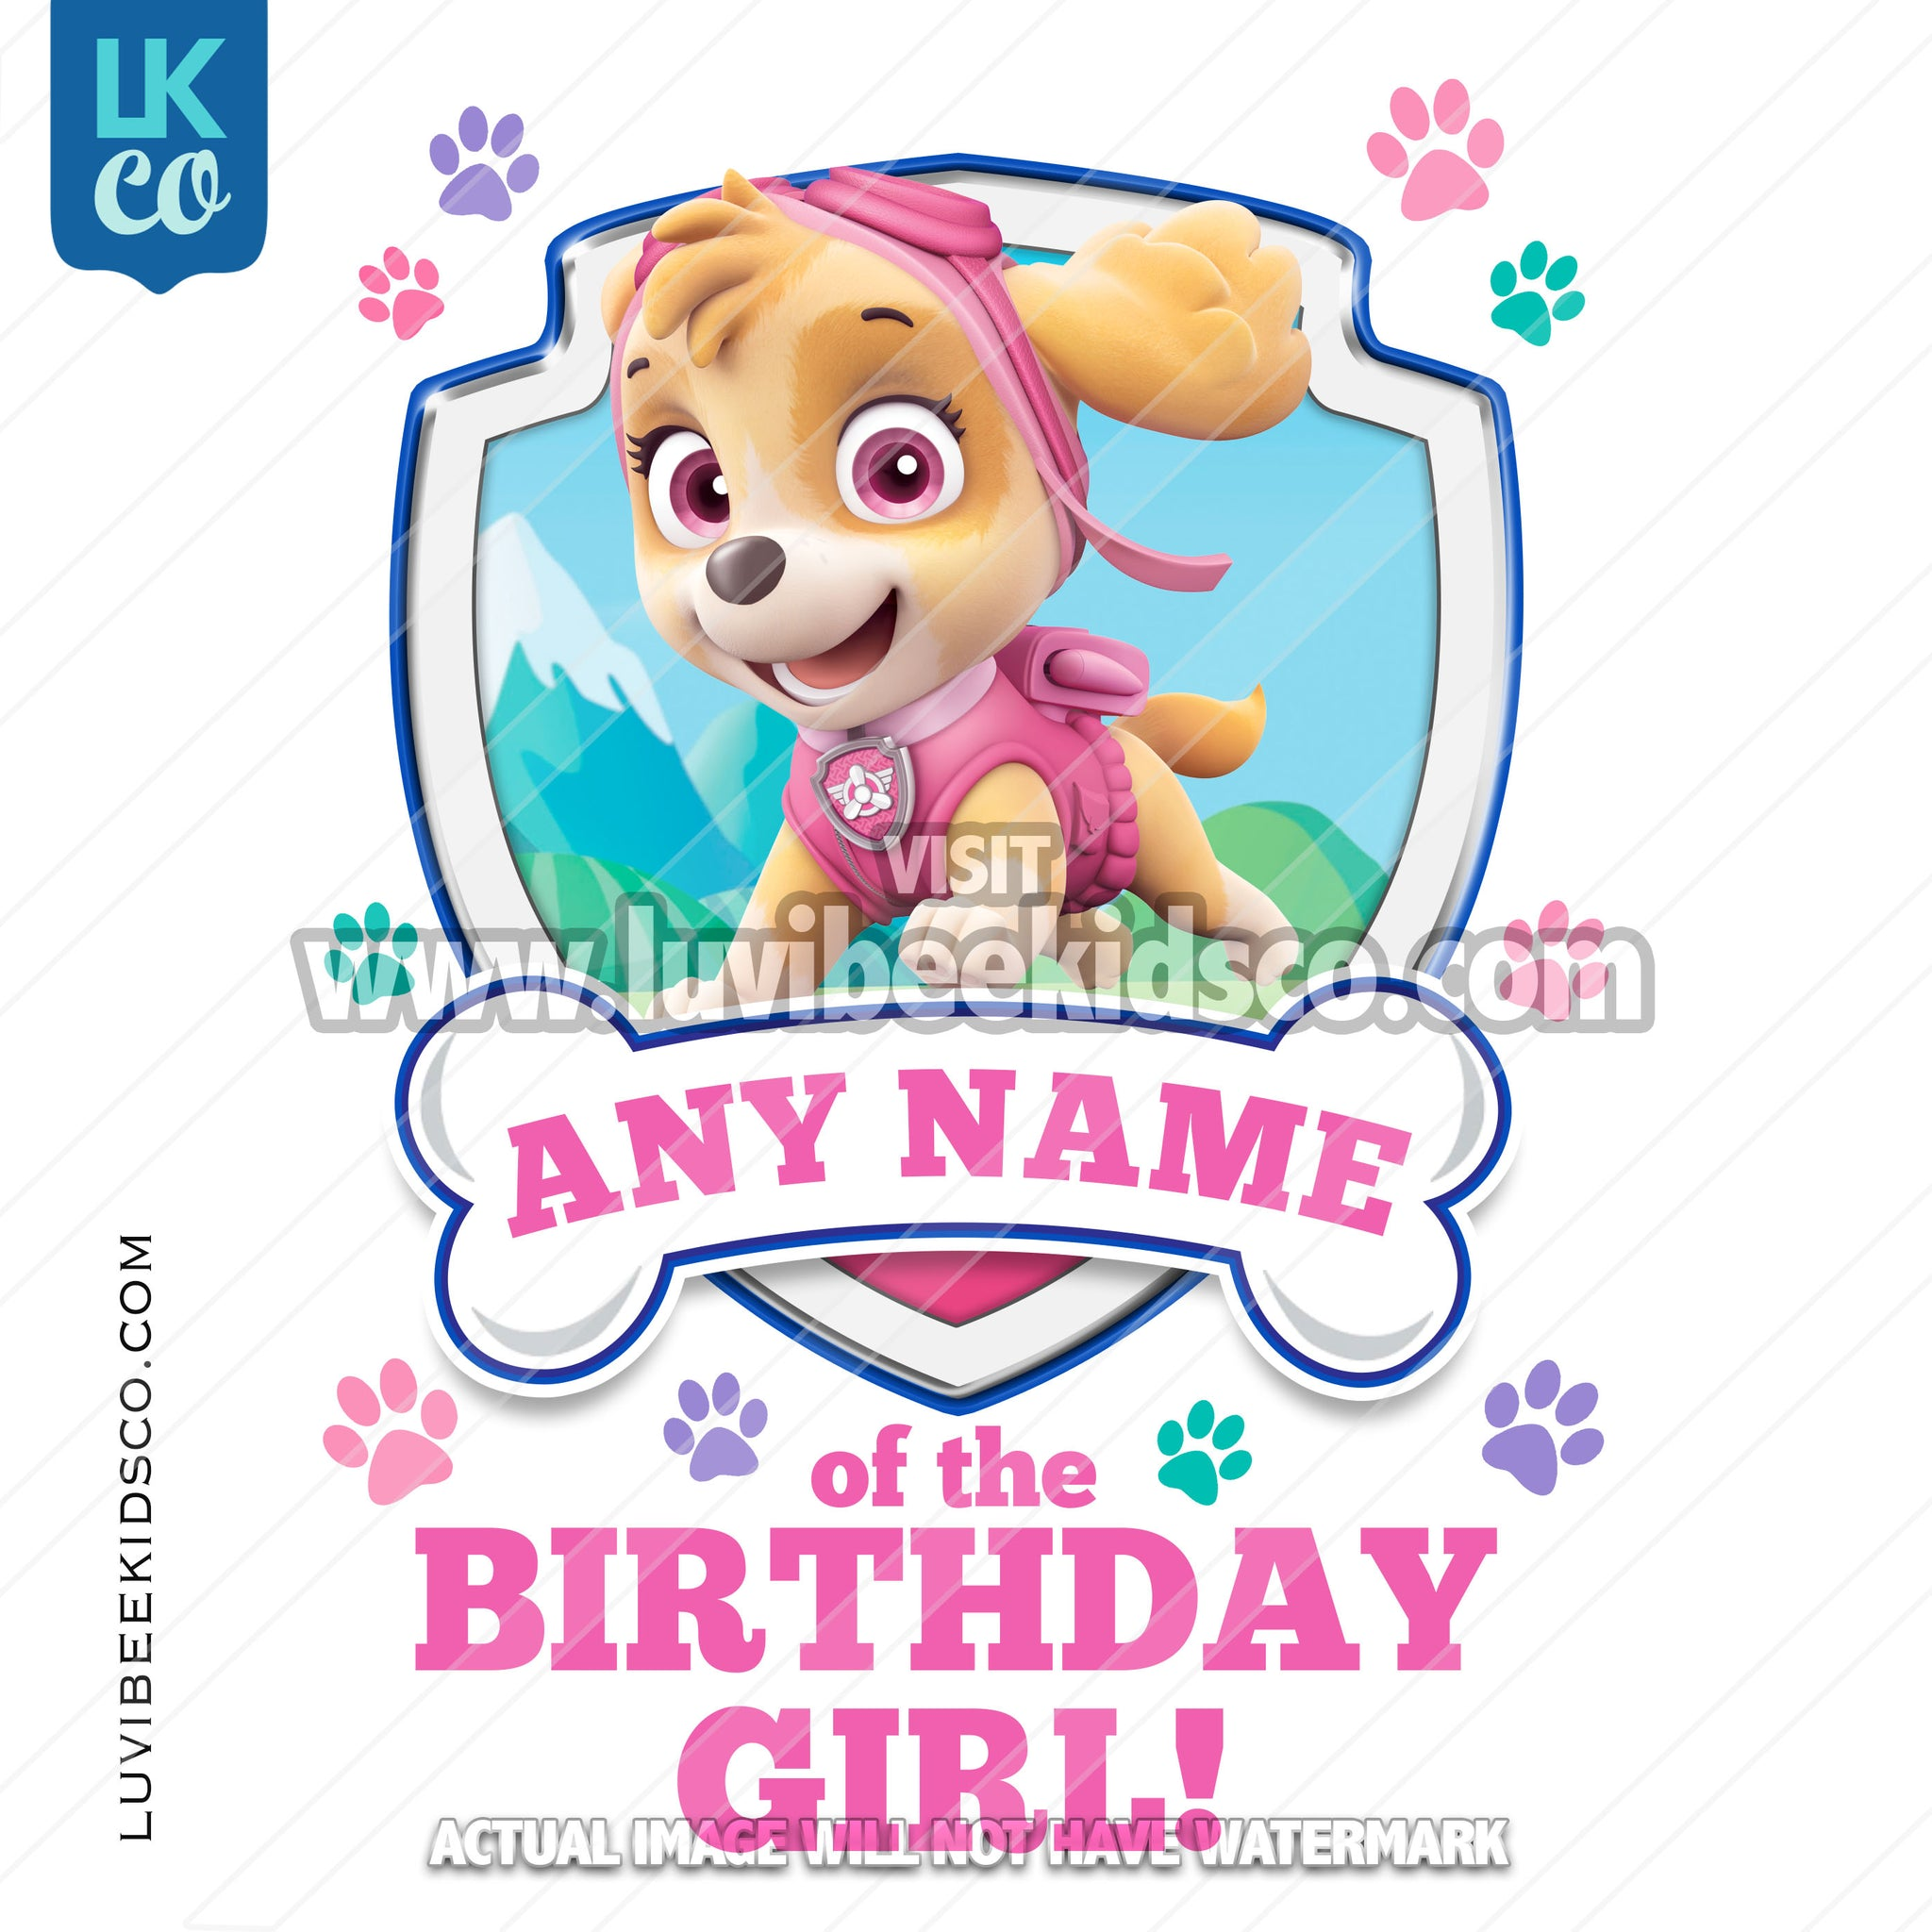 Paw Patrol - Pink Skye Family Member of the Birthday Girl - LuvibeeKidsCo